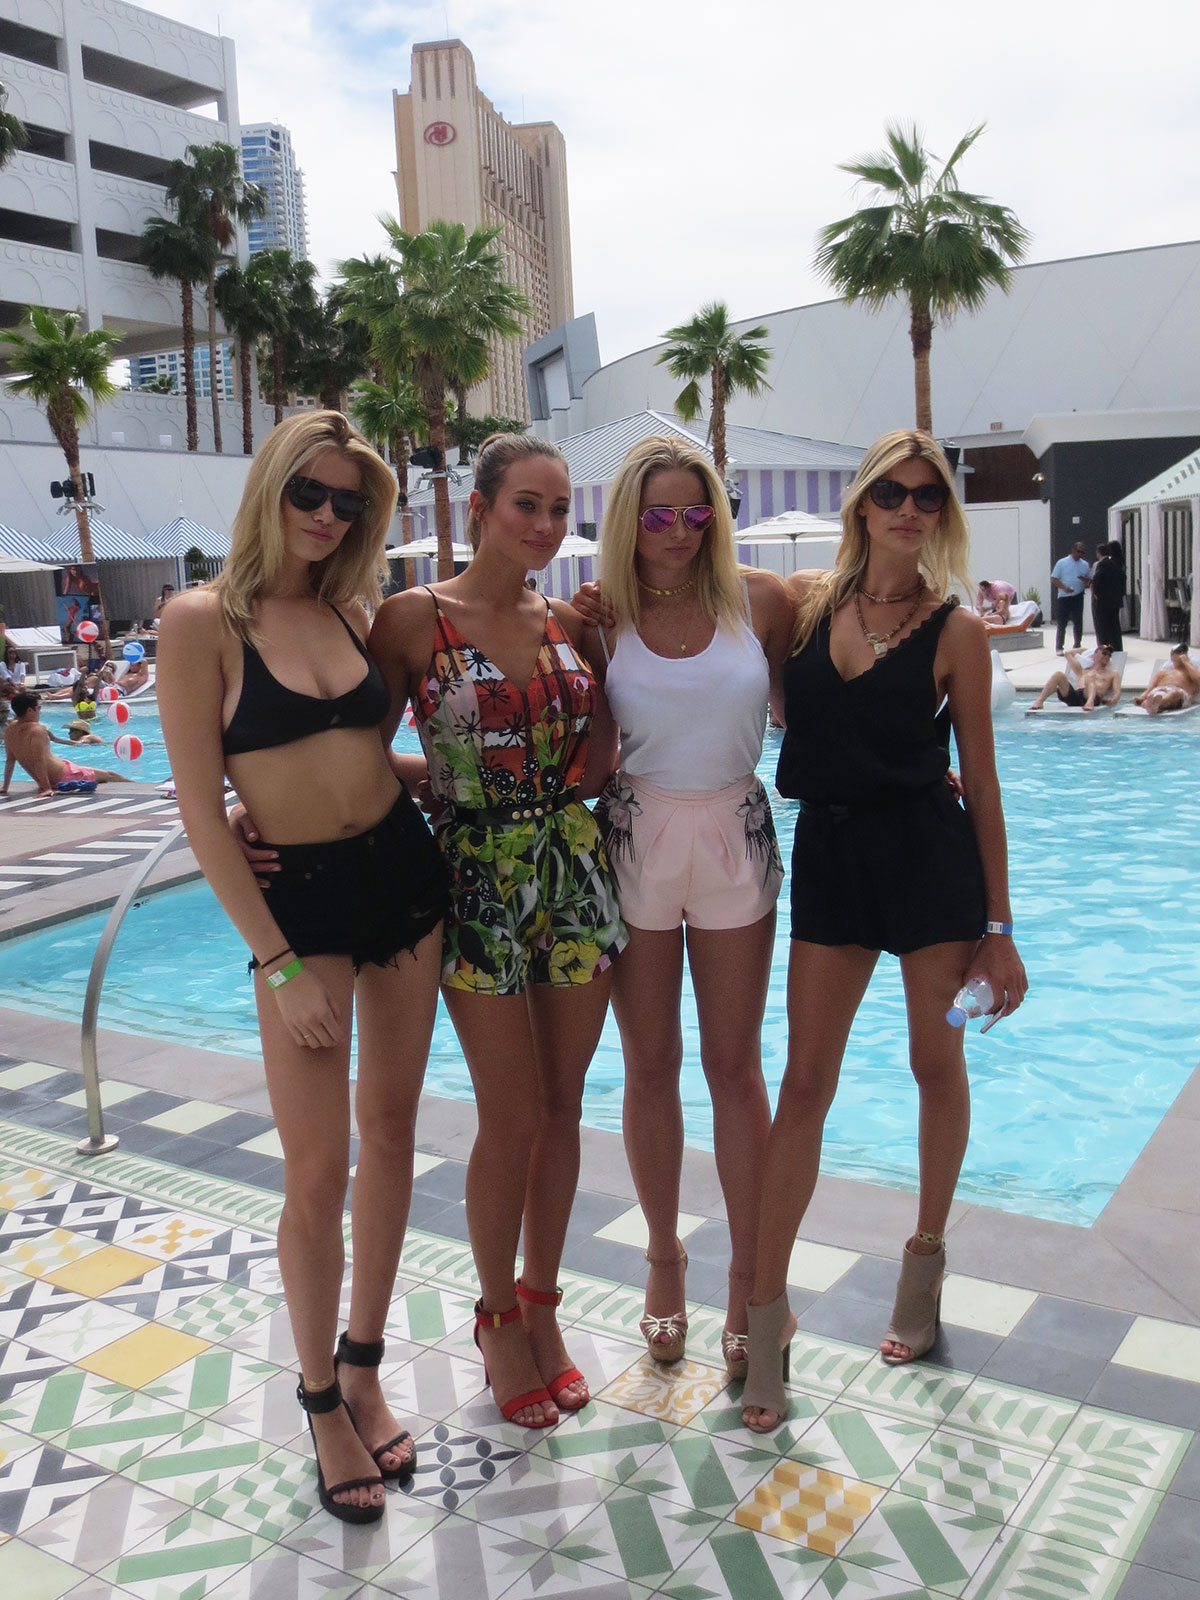 Hailey Clauson, Hannah Davis, Genevieve Morton and Kelly Rohrbach attend the Official Sports Illustrated Fight Weekend Party at the SLS Las Vegas Hotel & Casino.